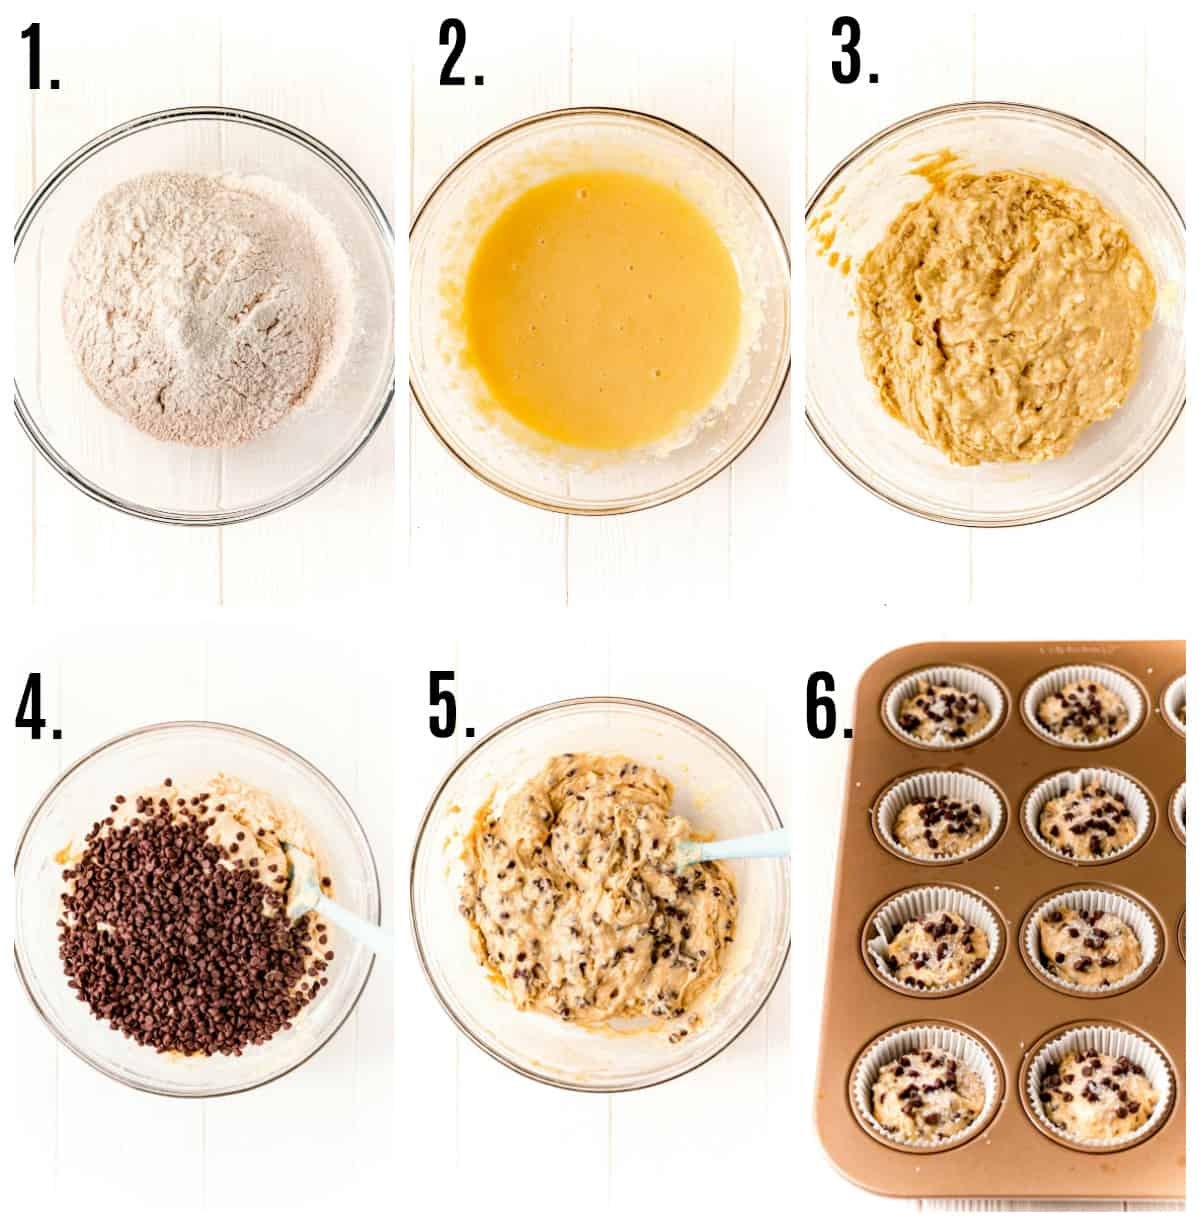 Step by step photos on how to make Easy Chocolate Chip Muffins